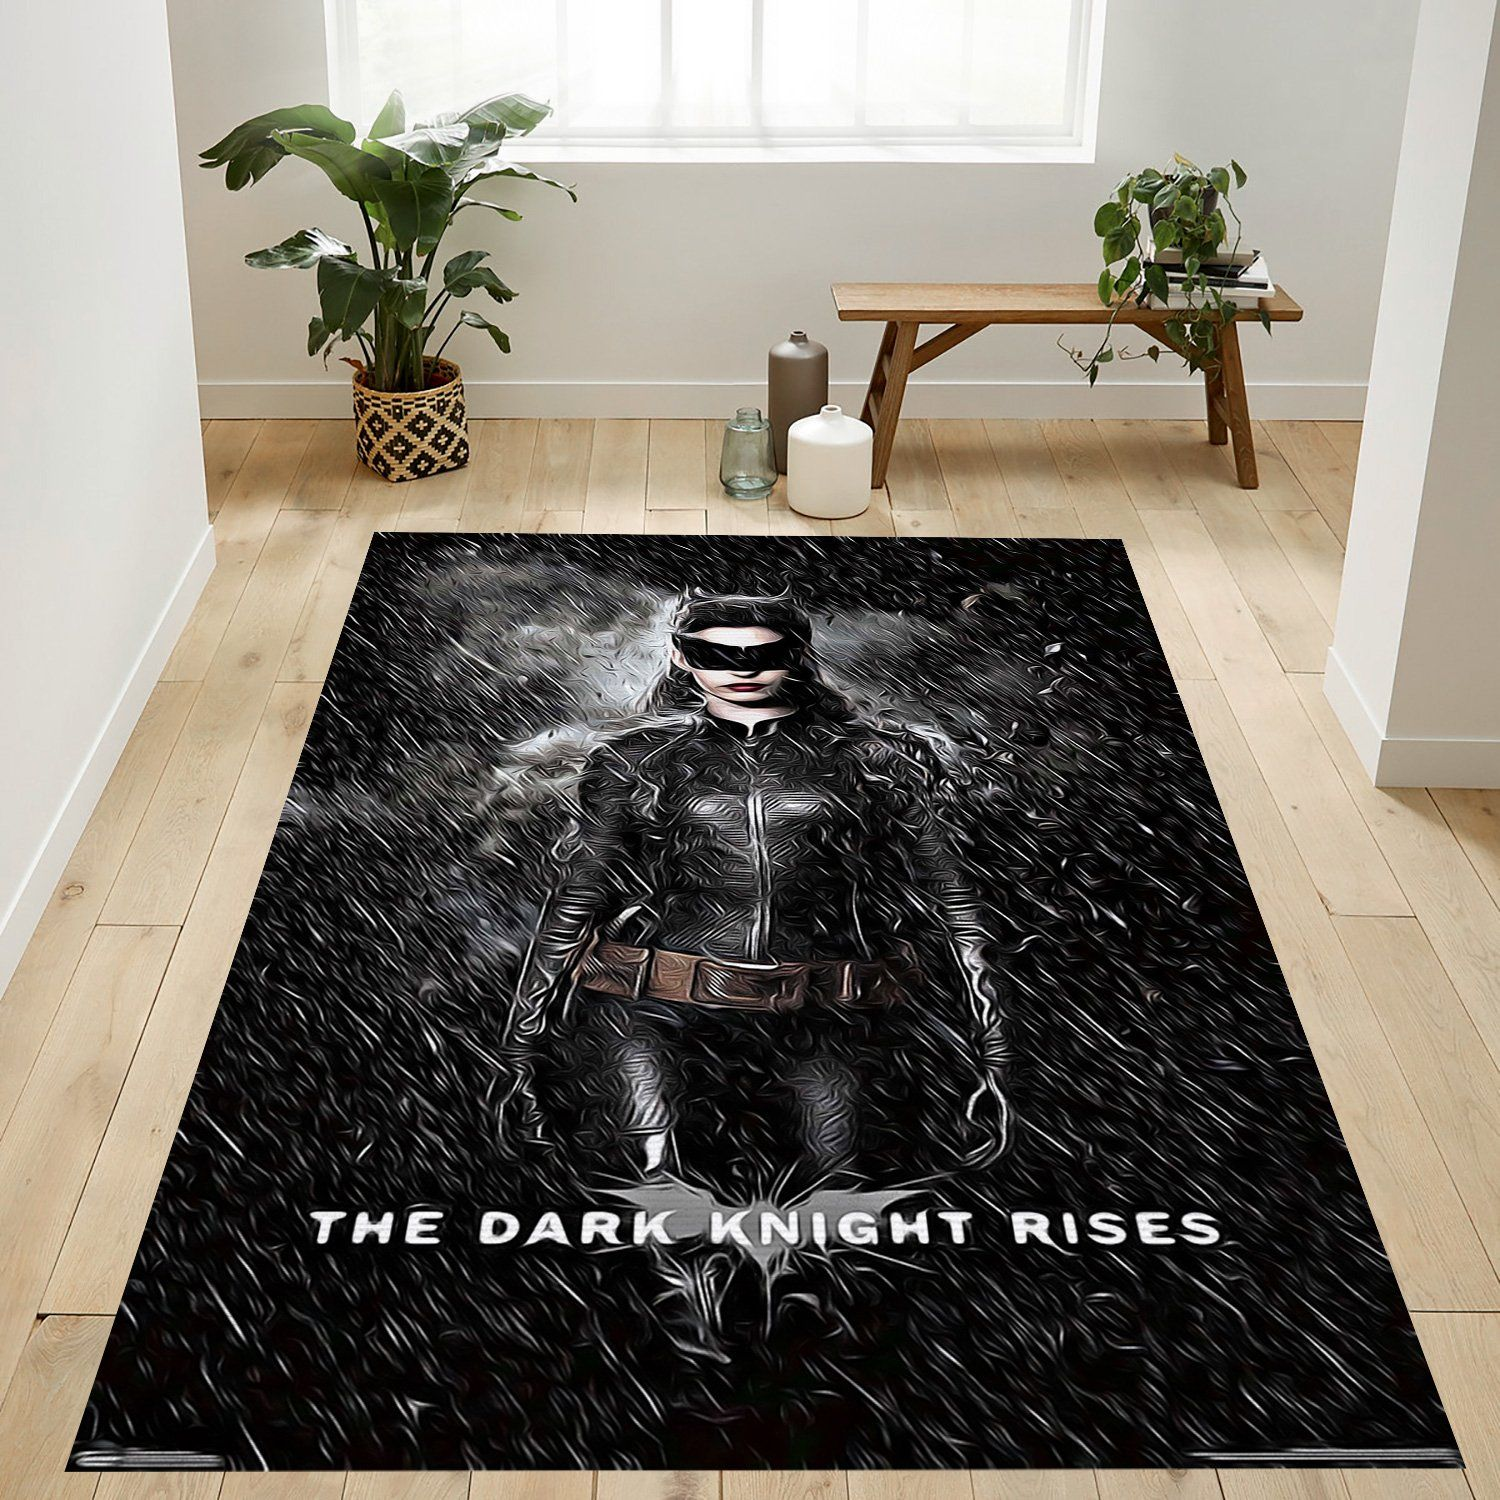 The Dark Knight Rises Catwoman Rug